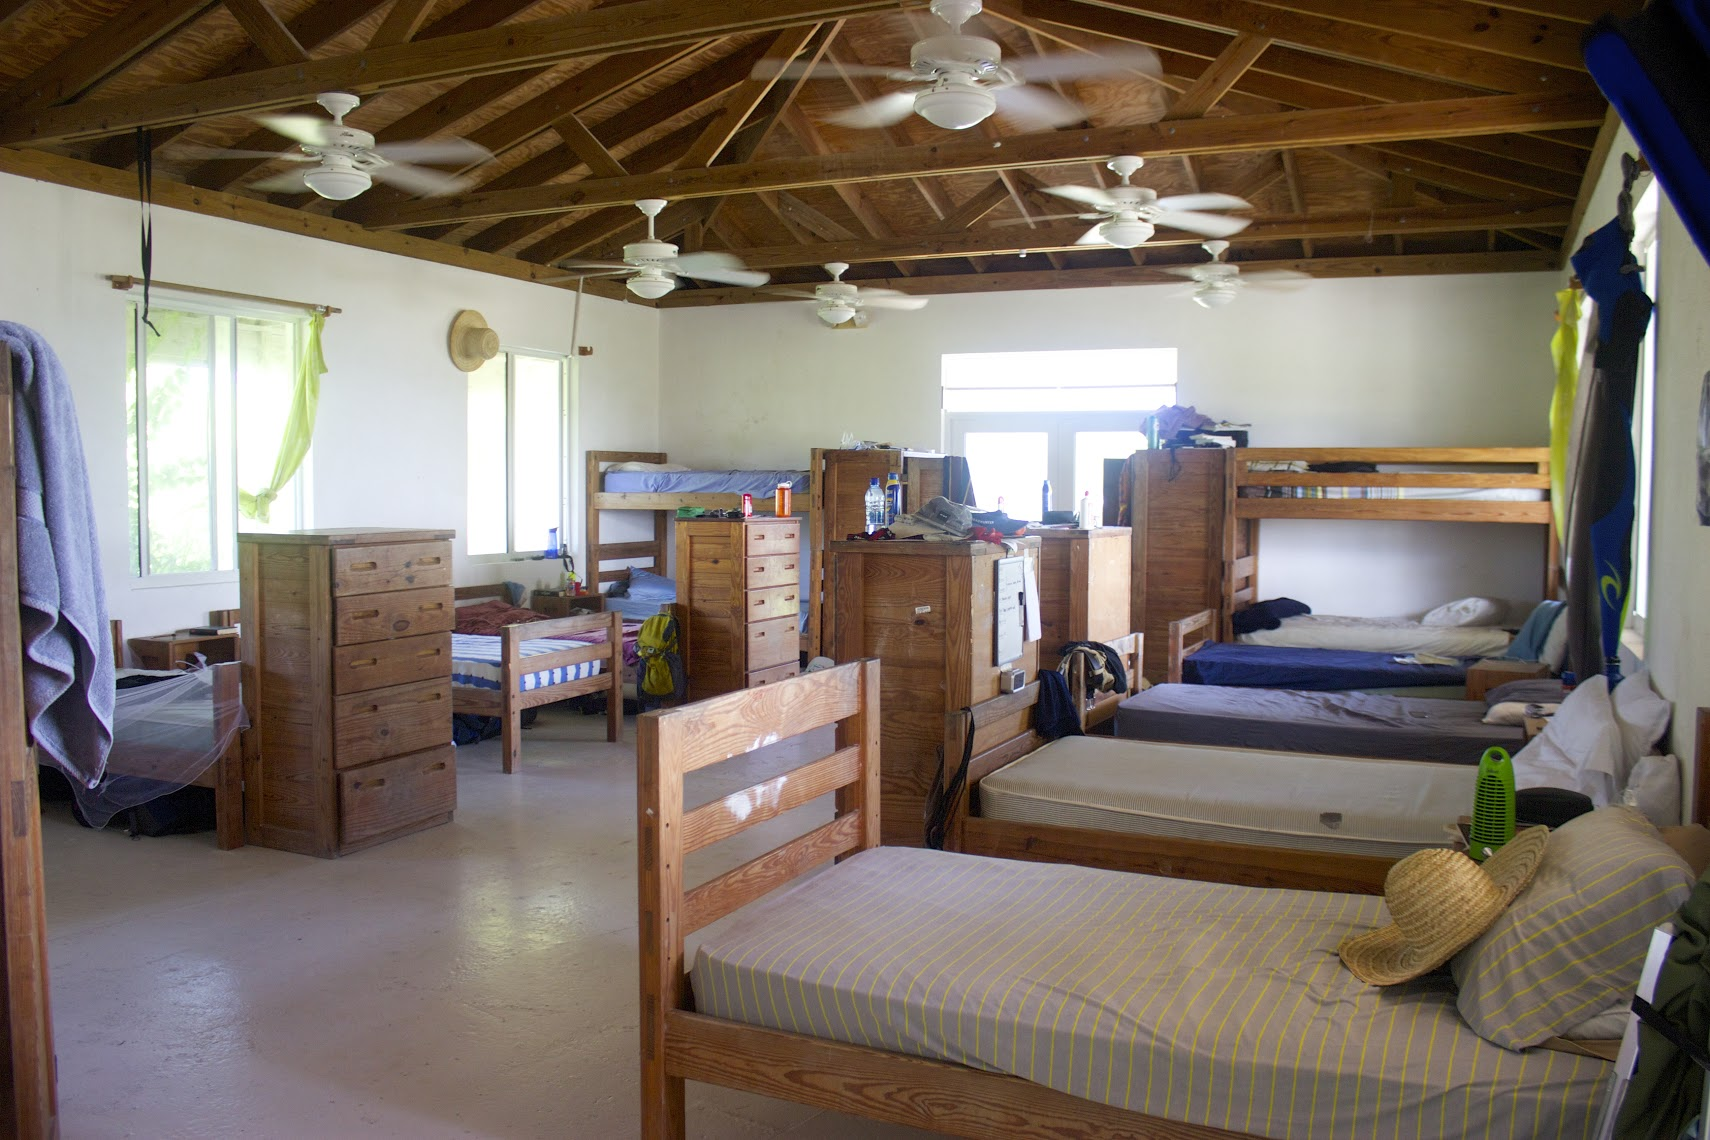 View of boys dorm wing.